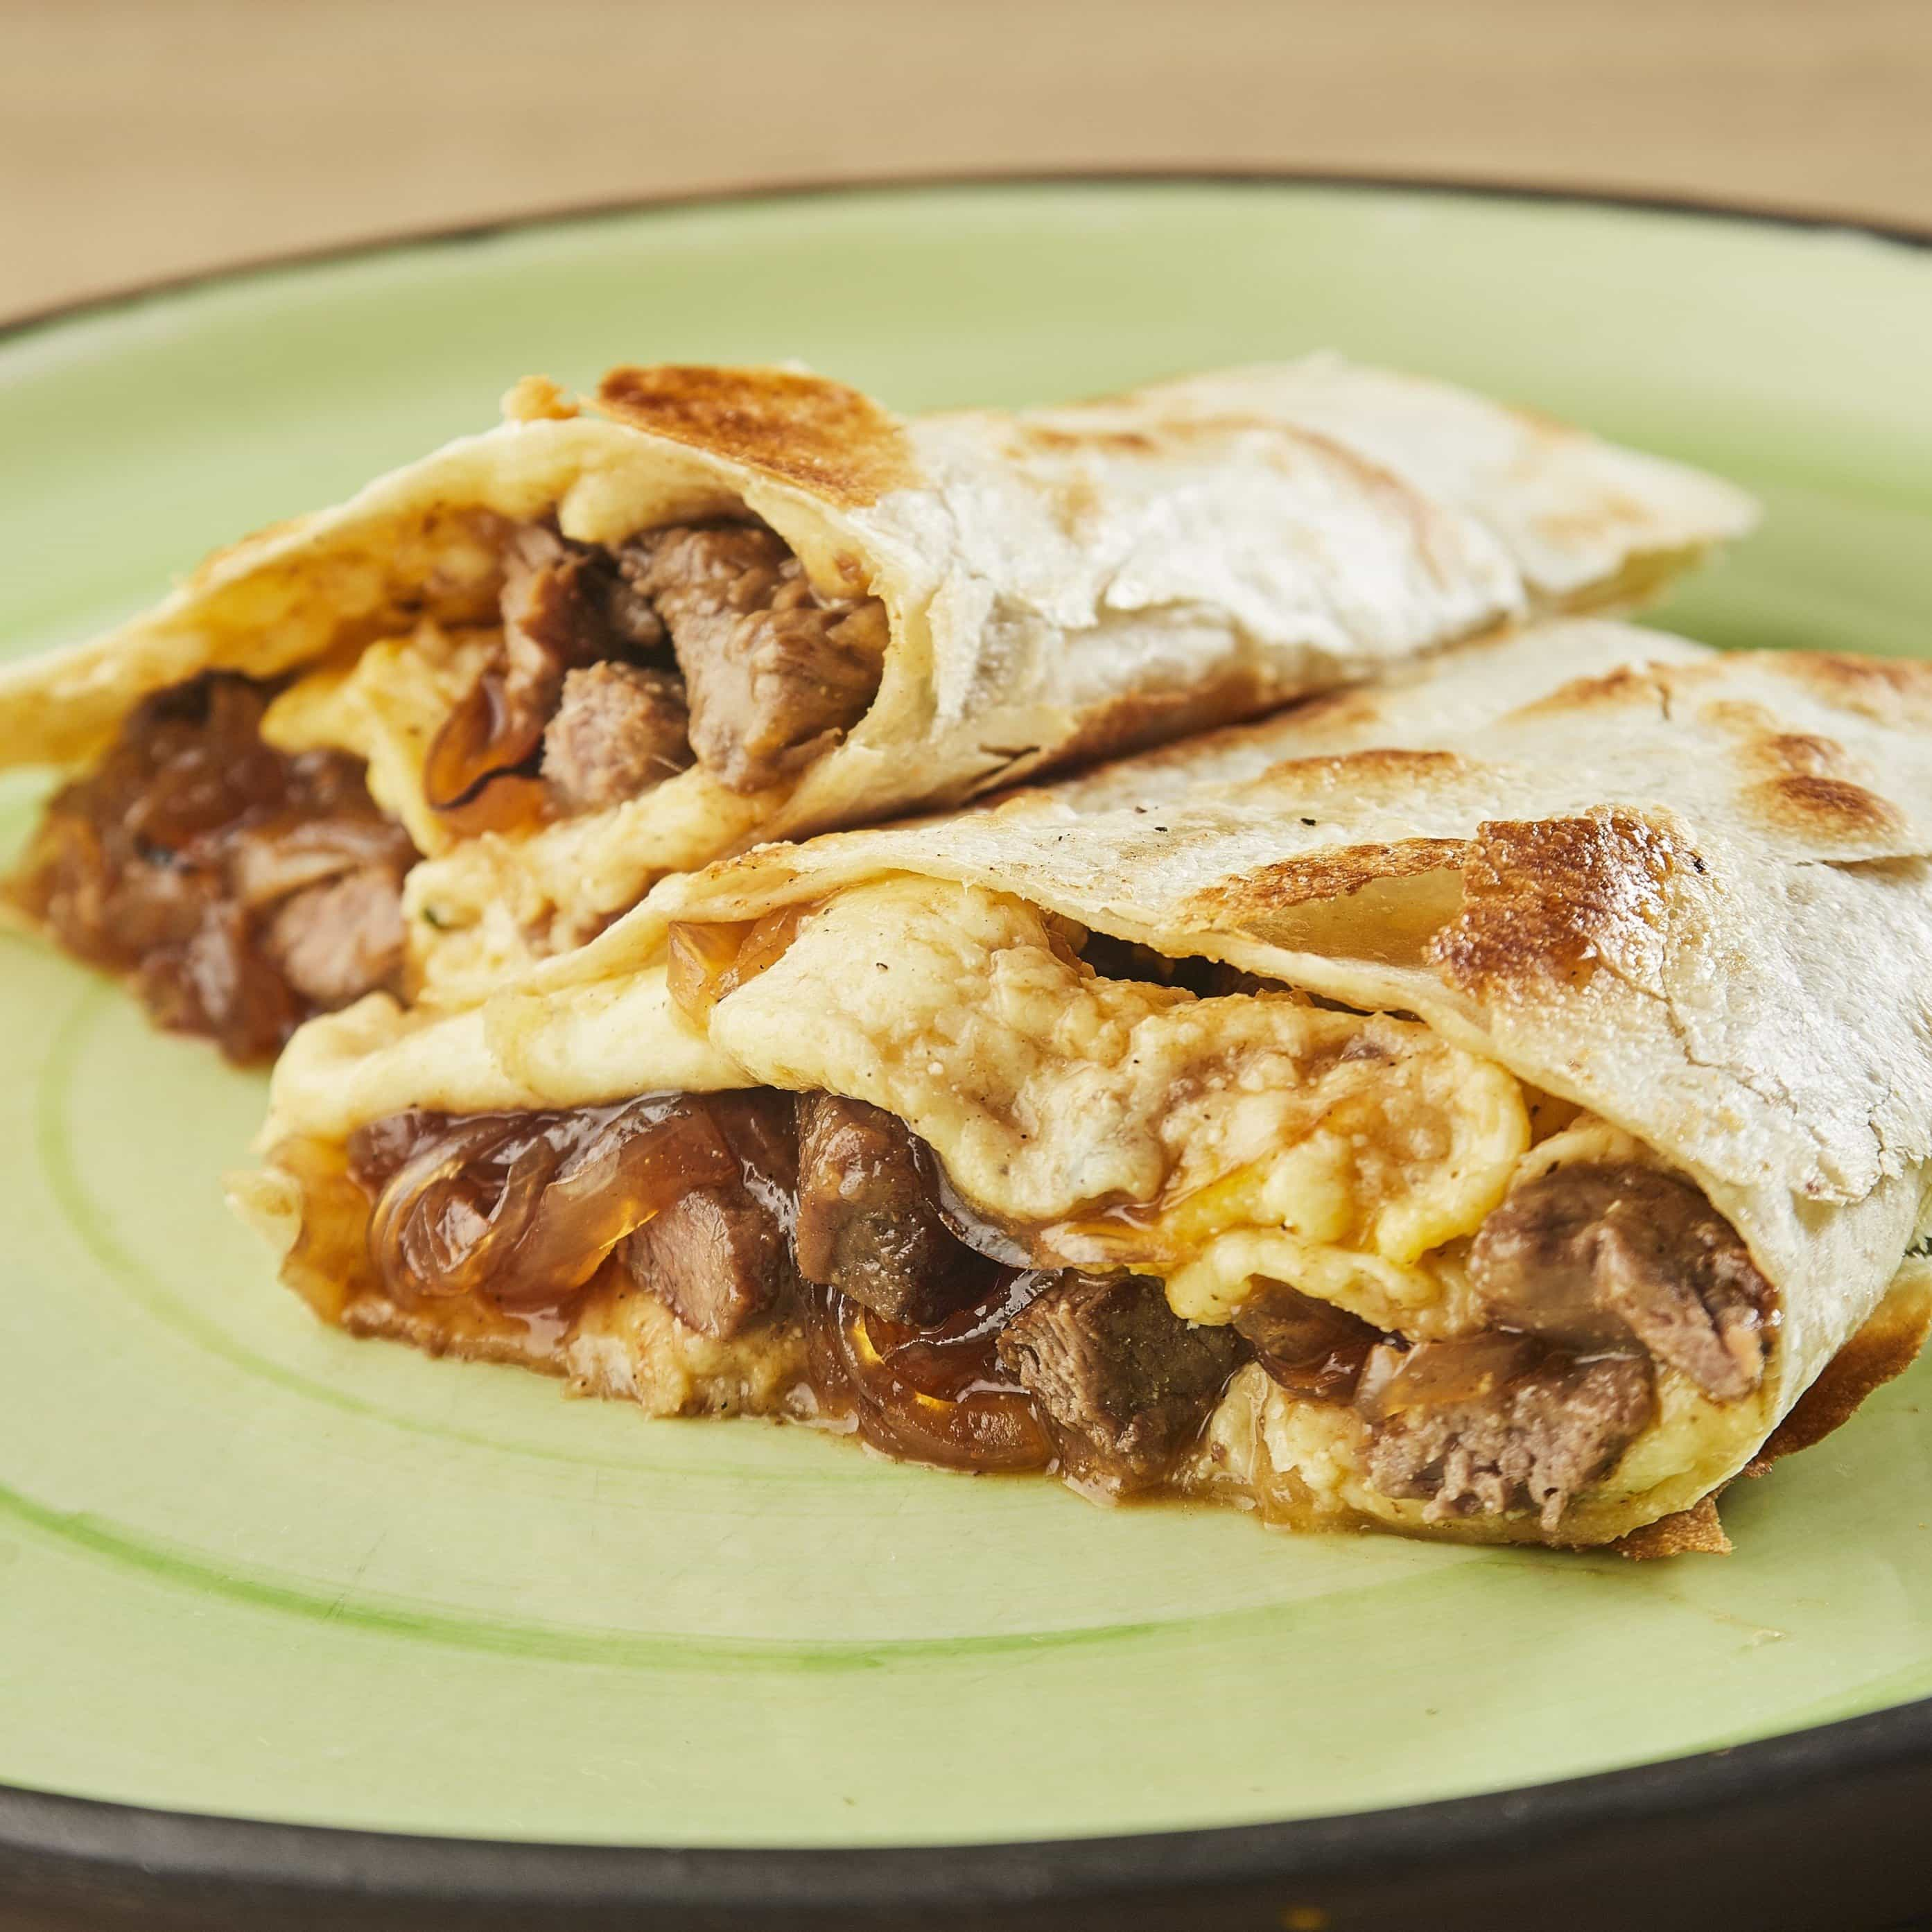 Quesadilla Cebolla Chipotle Steak